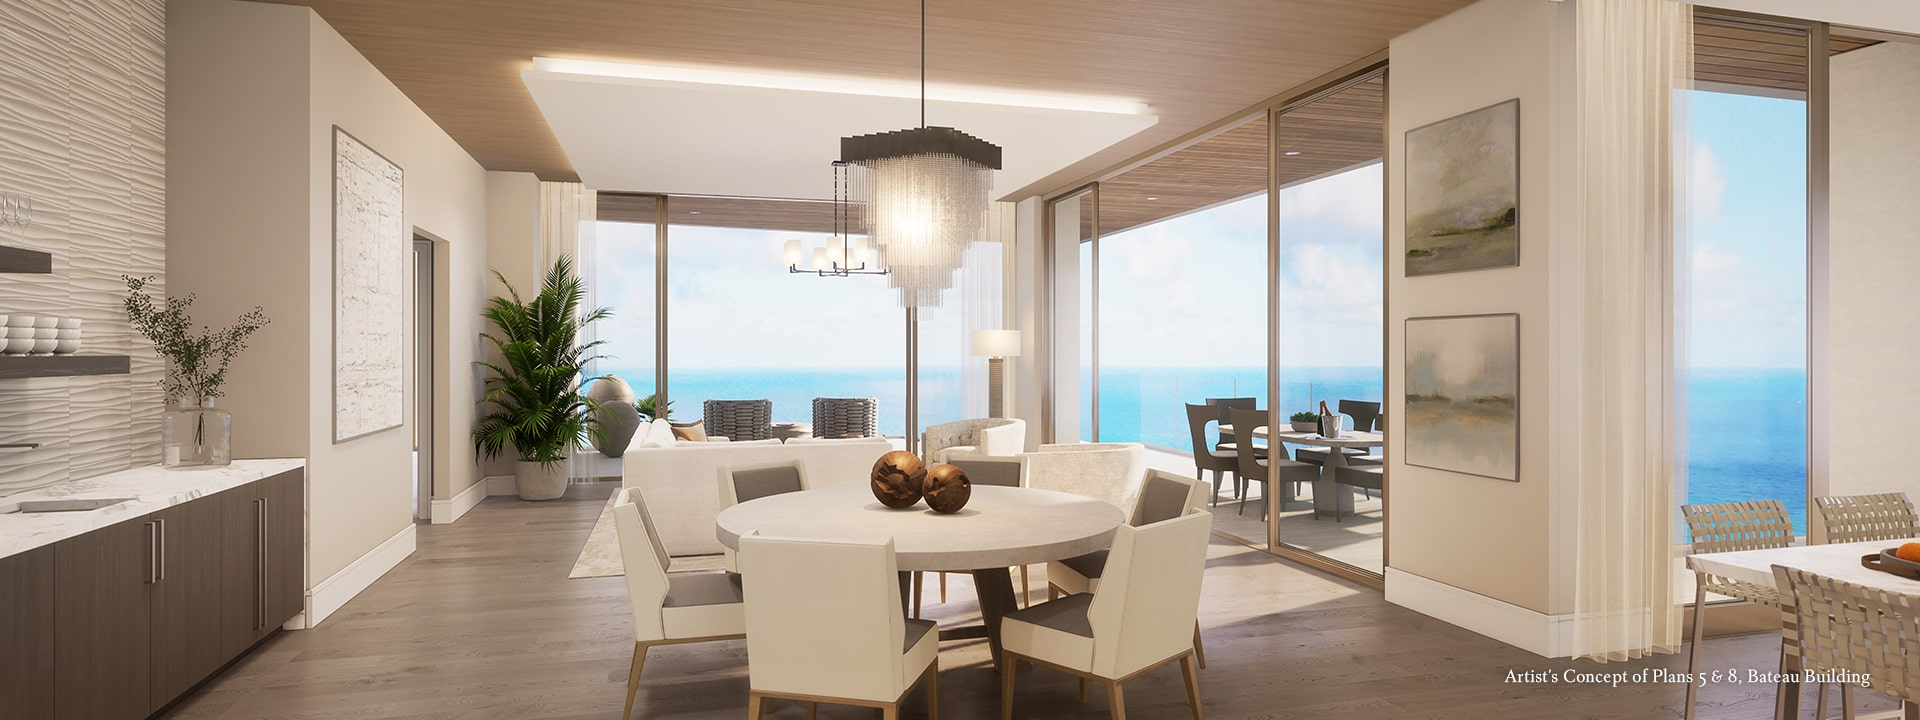 Bateau Plan 5 & 8 Living Room Rendering at The St Regis Longboat Key Resort